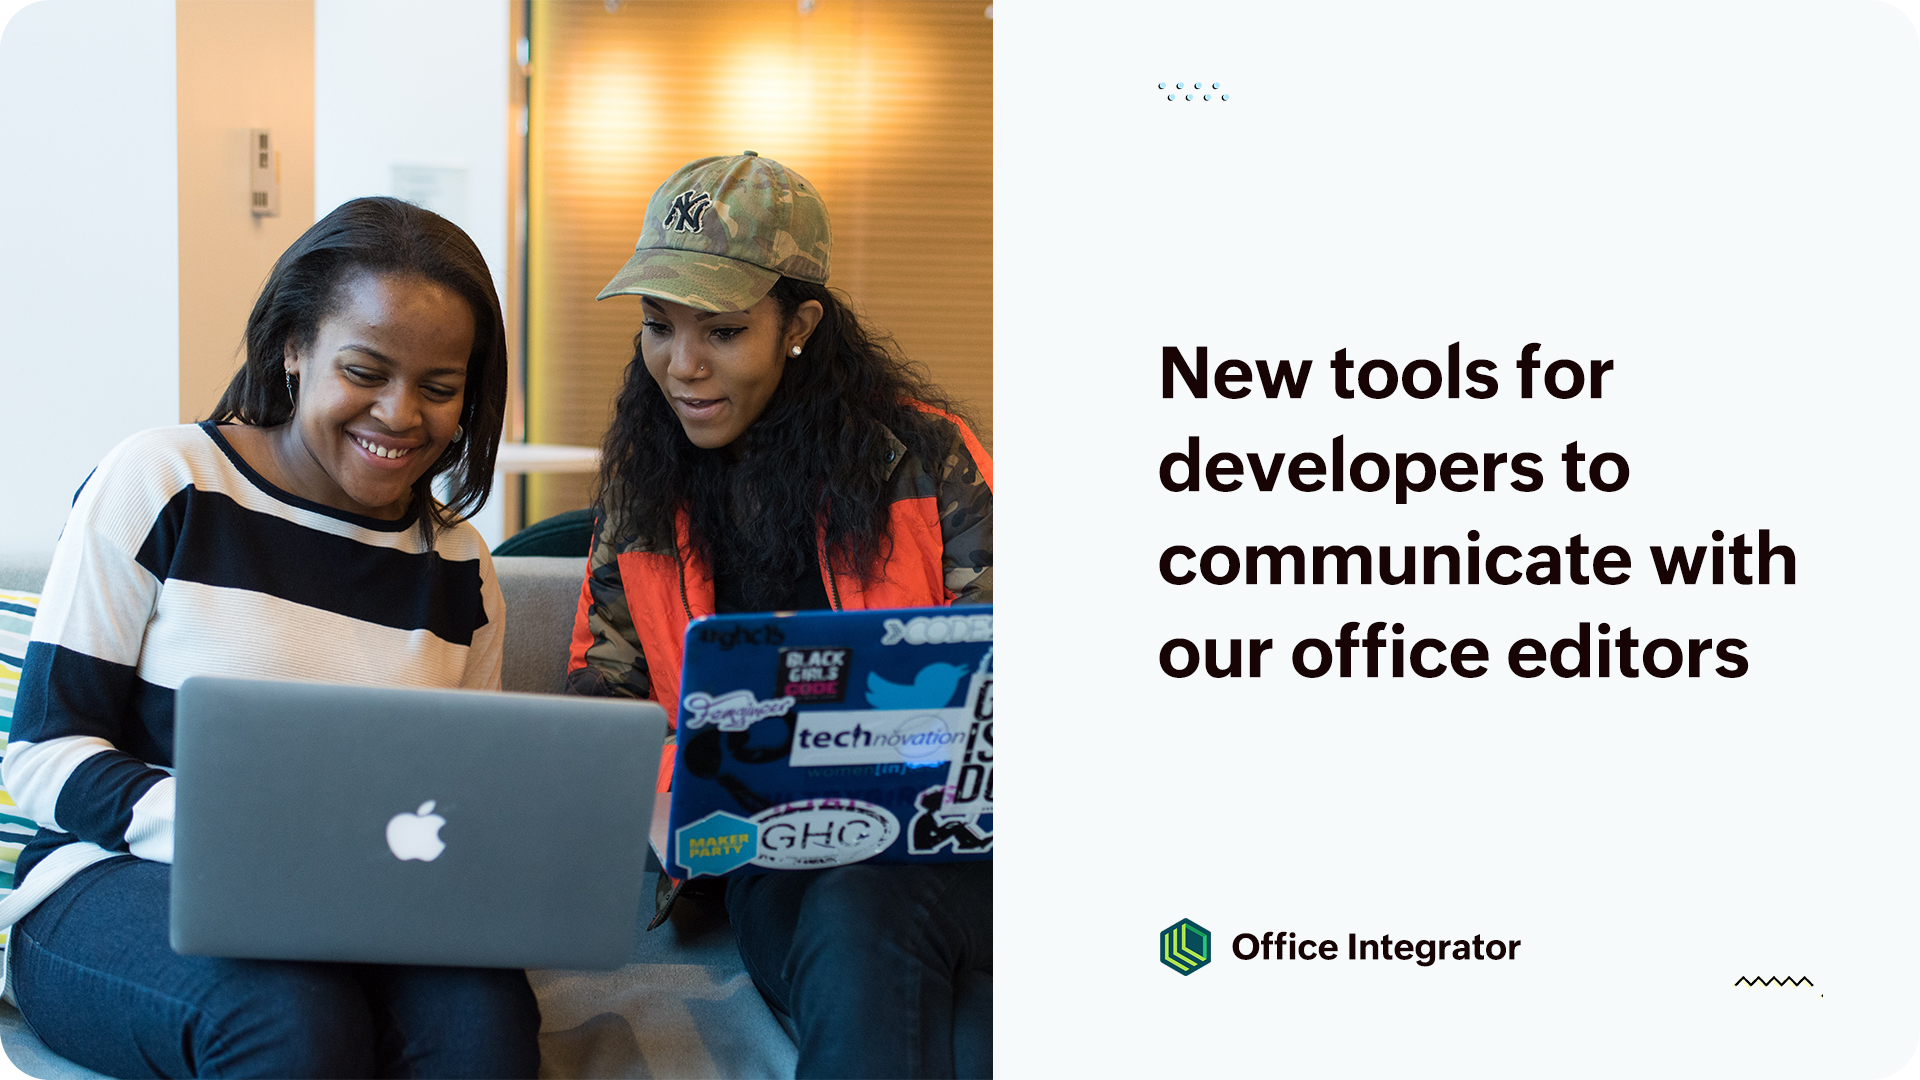 Introducing new ways for developers to control and communicate with our office editors